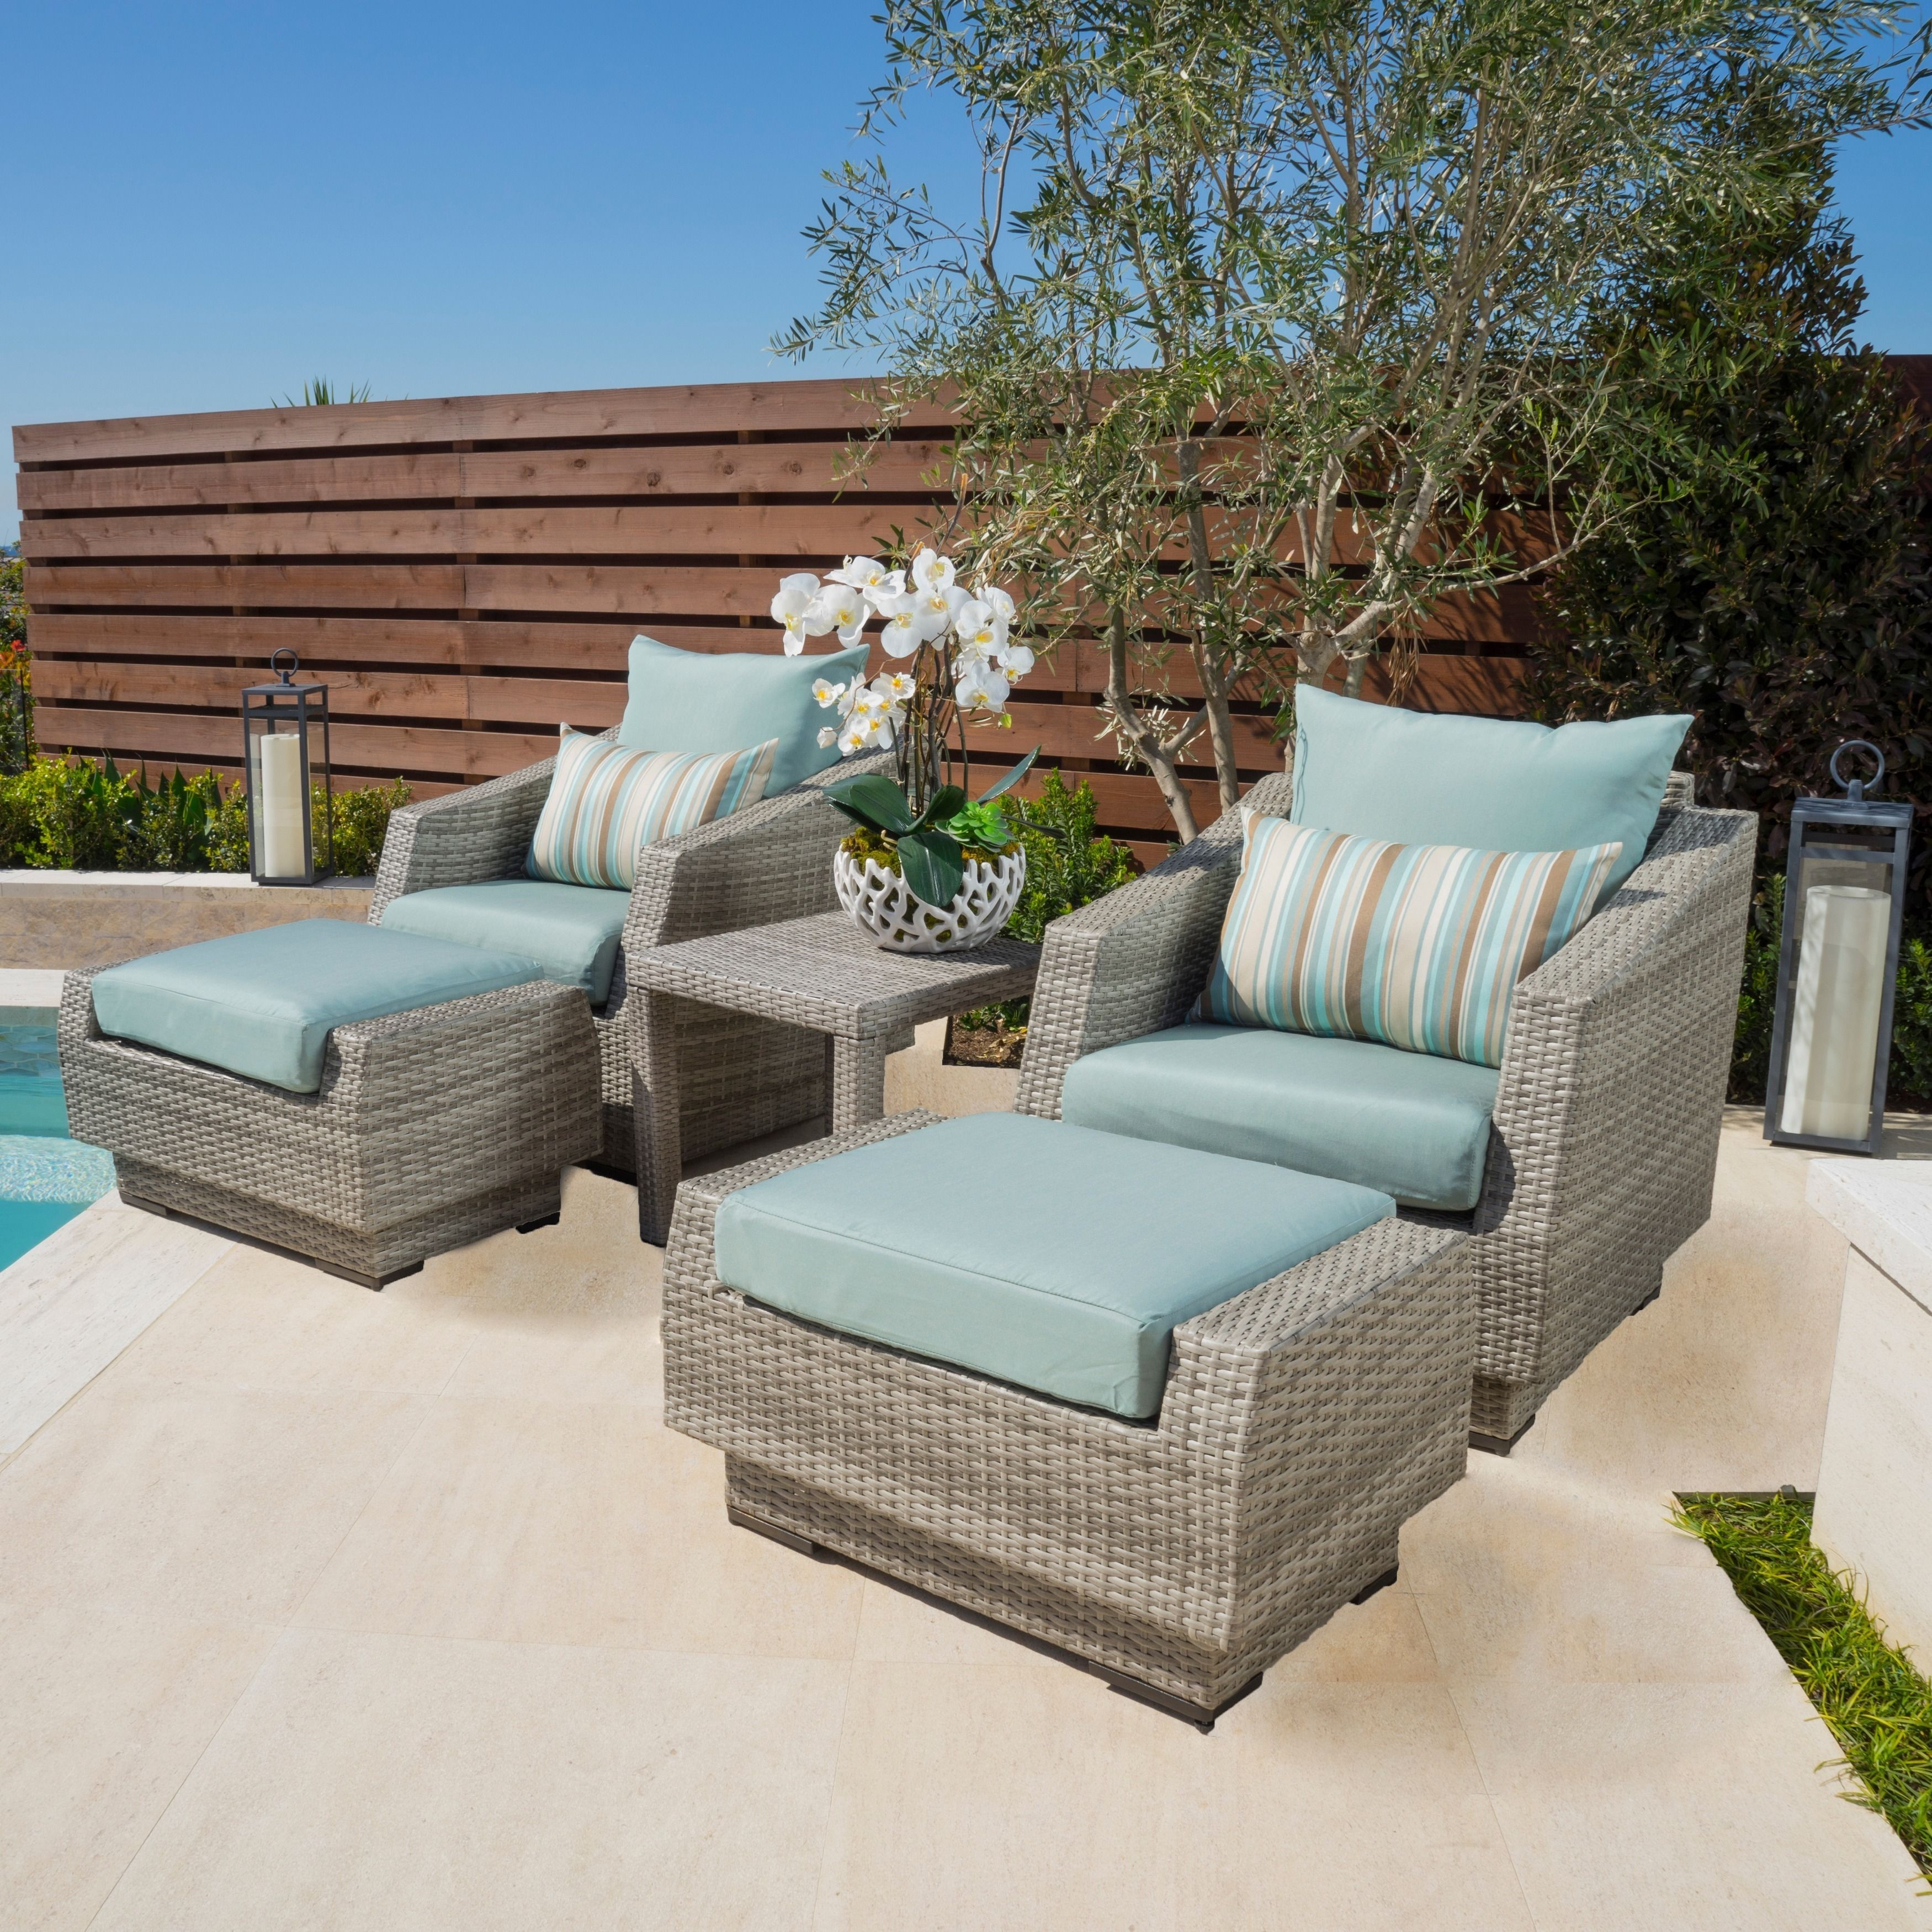 Overstock Com Online Shopping Bedding Furniture Electronics Jewelry Clothing More In 2020 Outdoor Furniture Sets Patio Furniture Sets Pool Furniture